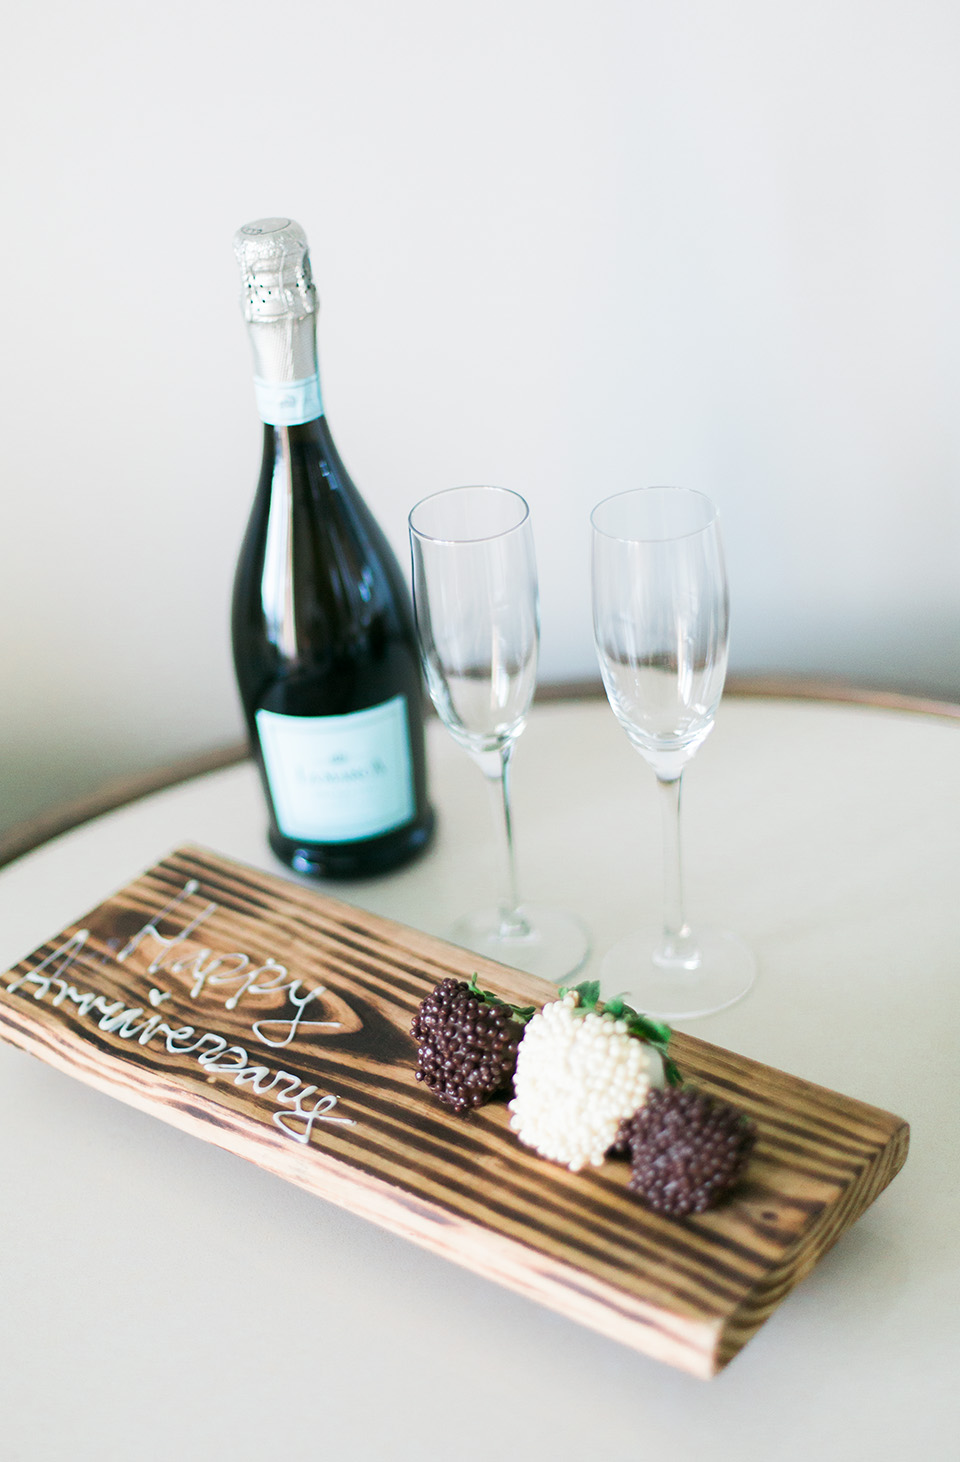 Image of champagne and chocolate covered strawberries at the Omni Amelia Island Plantation Resort.